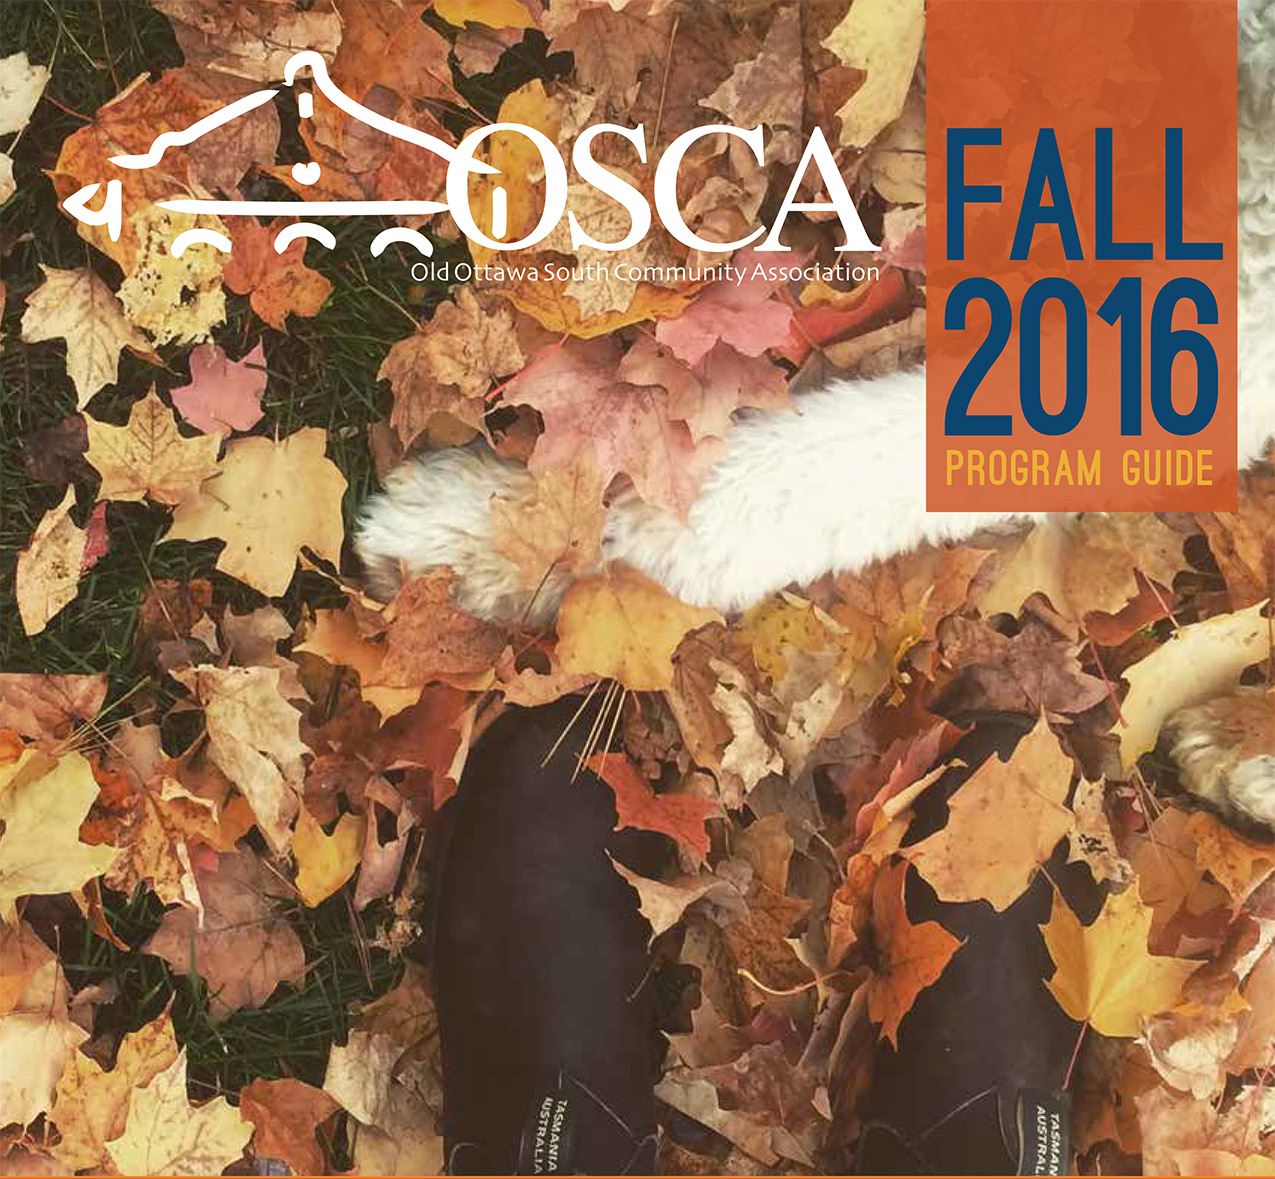 OCSA program guide feature